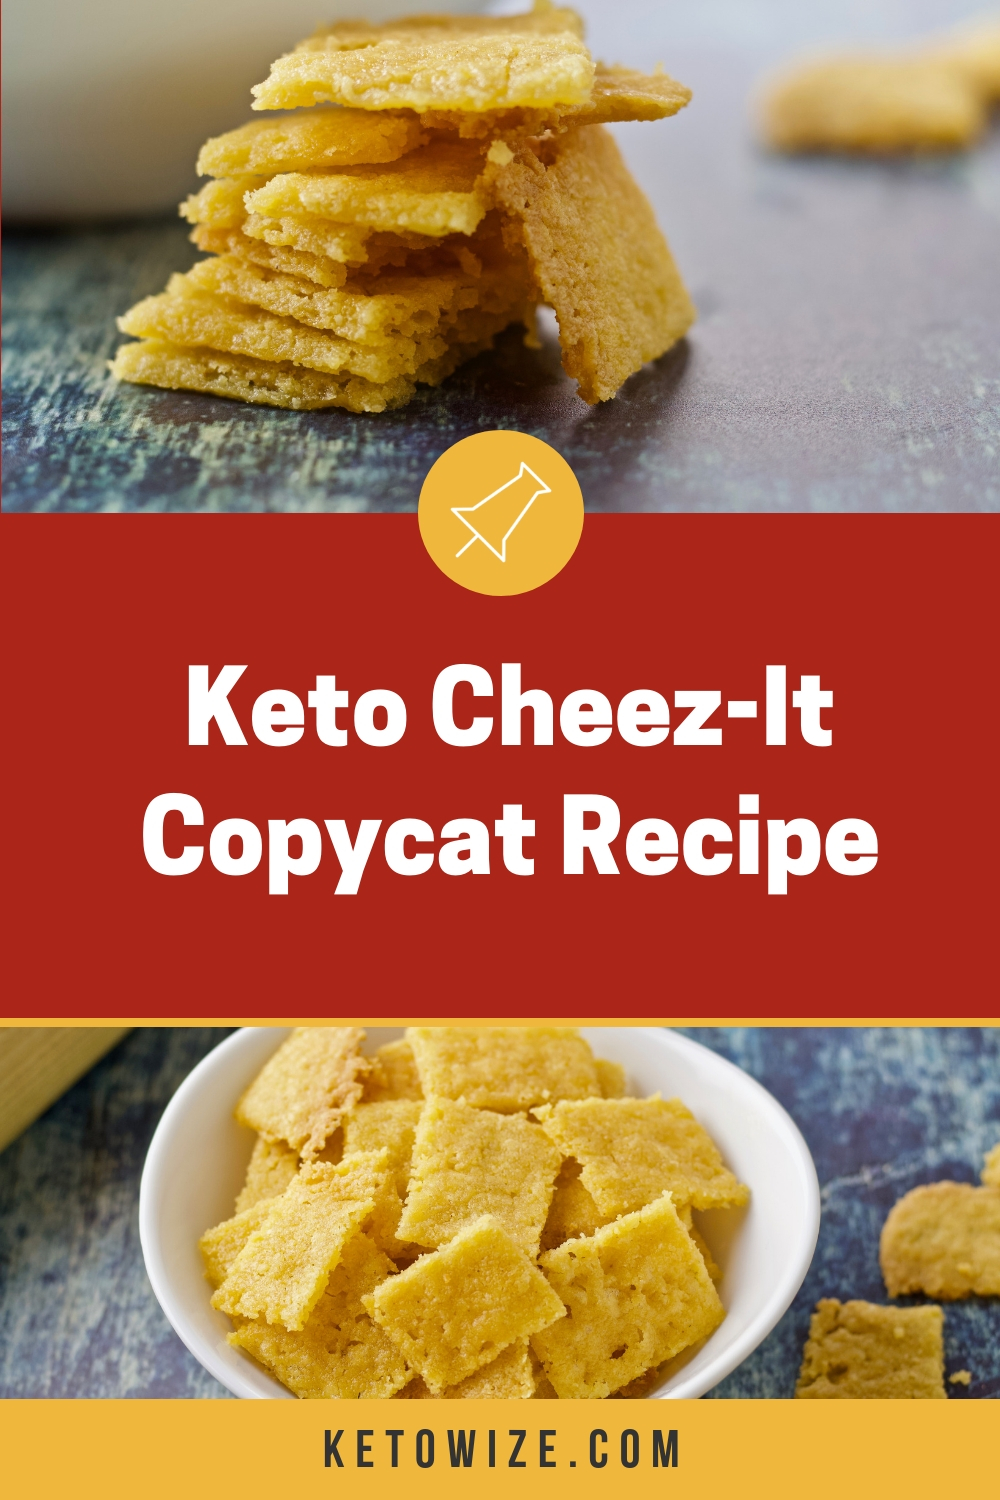 If you\'ve been on the keto diet for any length of time, you\'re probably craving the delicious crunch of a homemade cheese cracker.  This keto Cheez-It copycat recipe has everything you\'ve been missing...except the carbs.  Our simple low carb version uses almond flour, butter and cheddar to create the best keto Cheez-Its we\'ve ever tried.  Better than store bought and perfect for dipping in tomato soup, chili, or anything else you can think of.